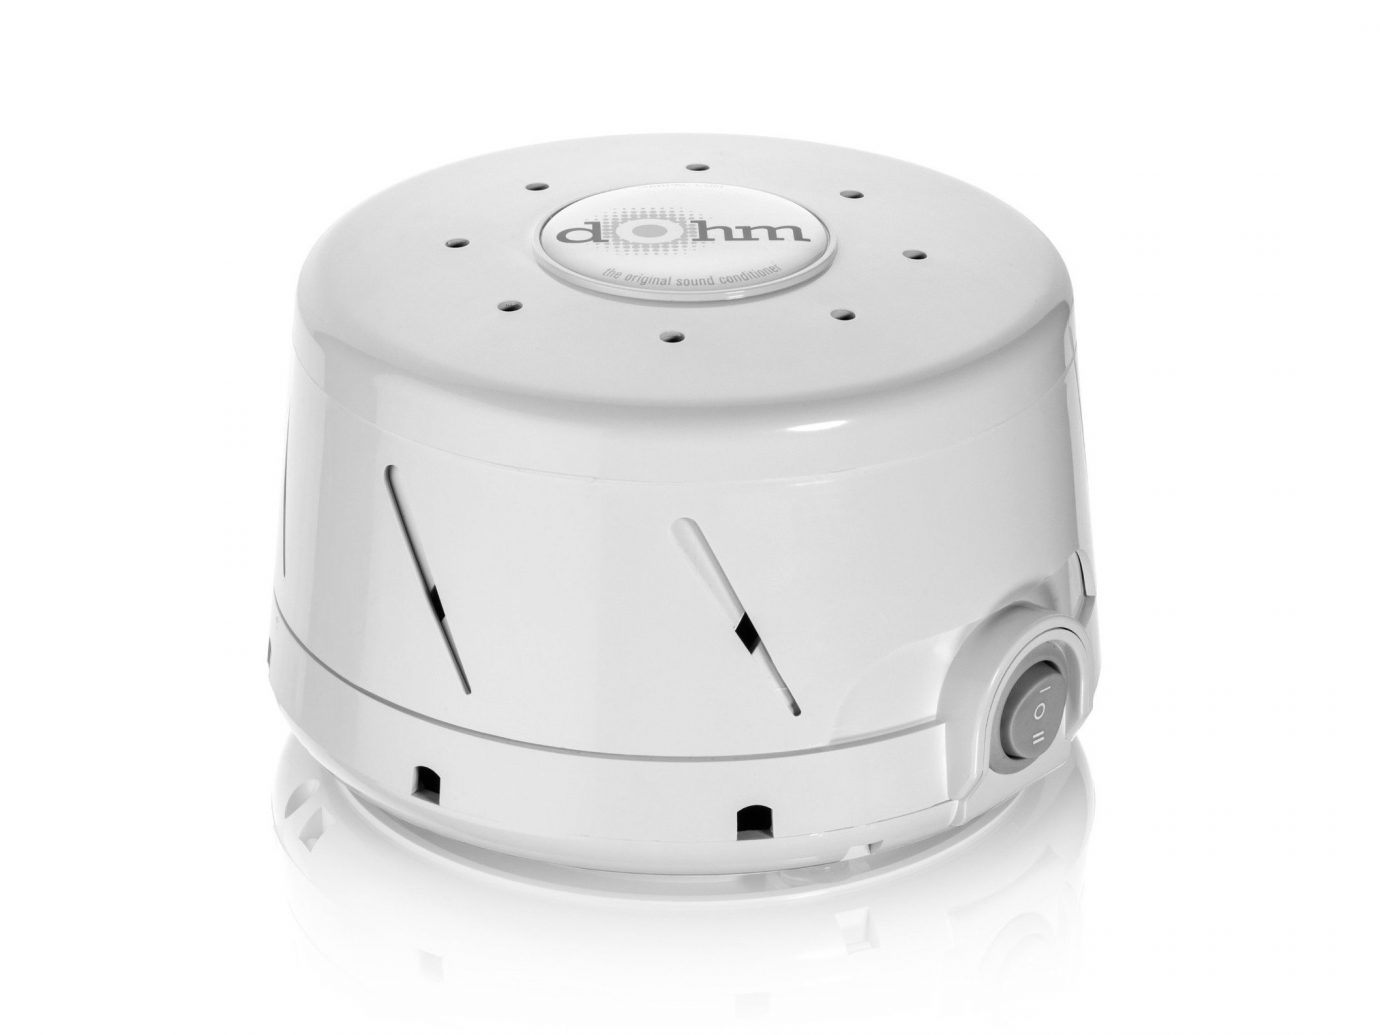 Health + Wellness Travel Tips indoor product electronics white small appliance technology kitchen appliance